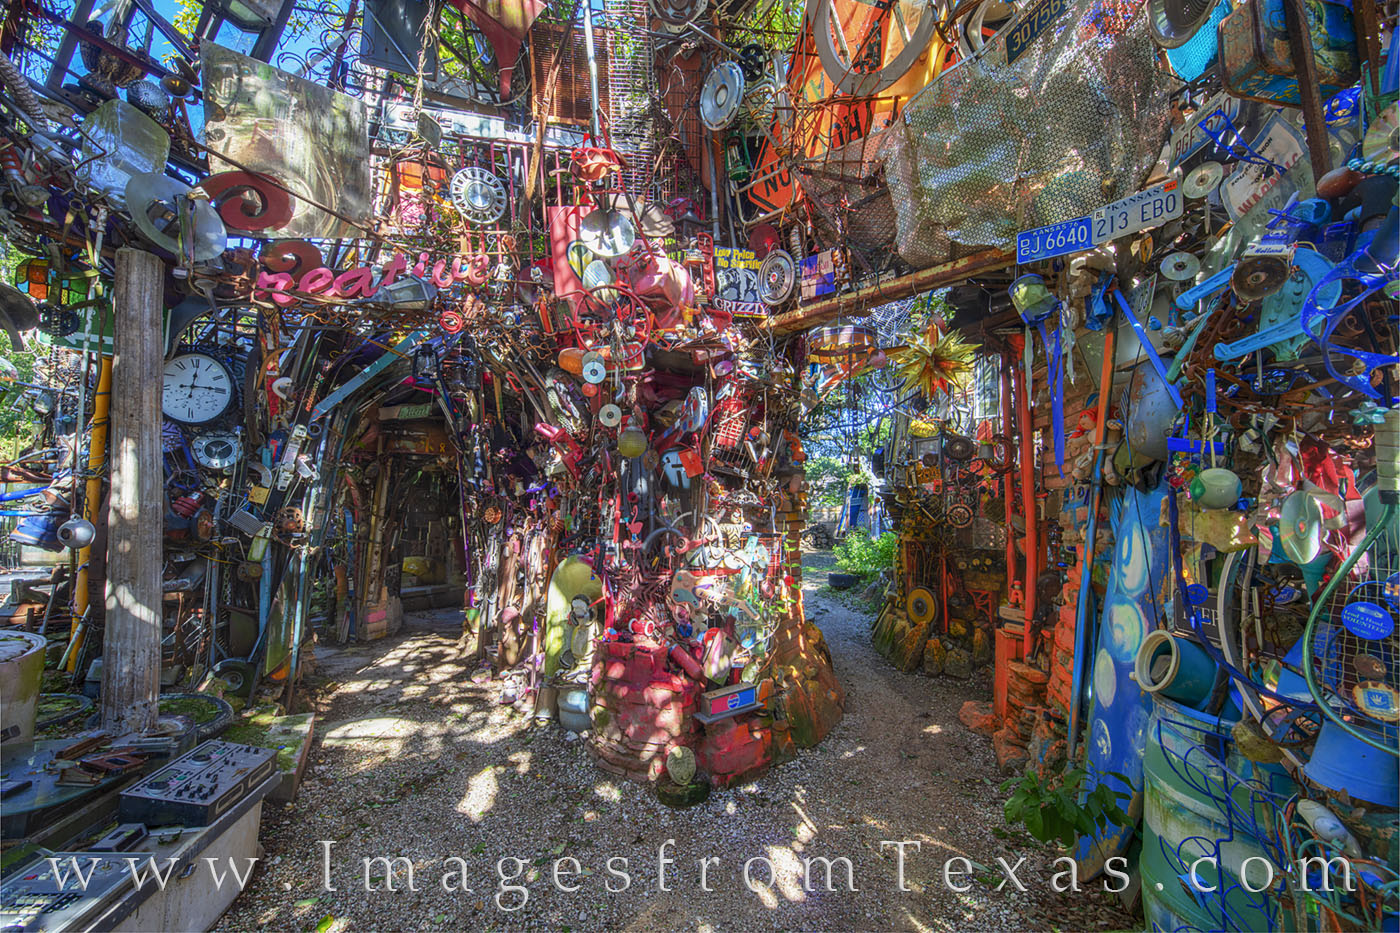 cathedral of junk, south austin, austin, icon, metal, junk, tourist, photo